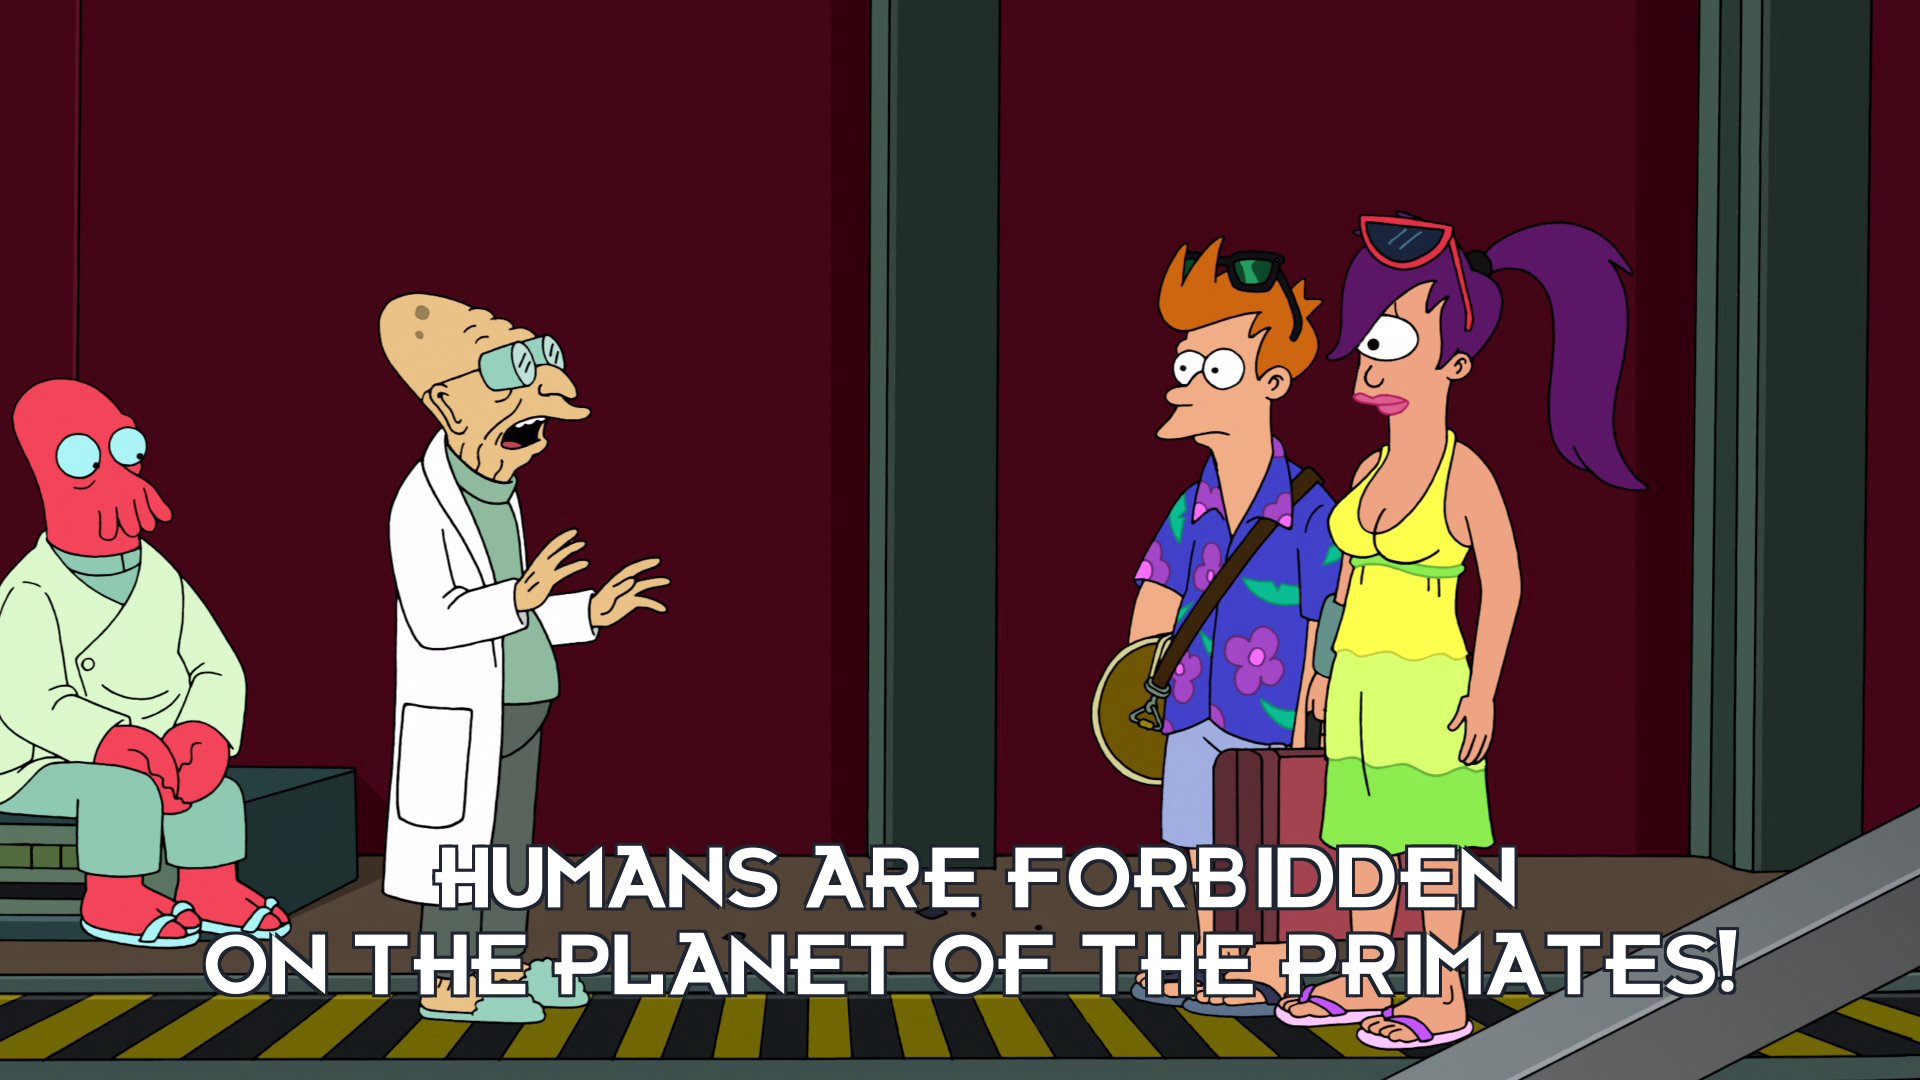 Prof Hubert J Farnsworth: Humans are forbidden on the planet of the primates!